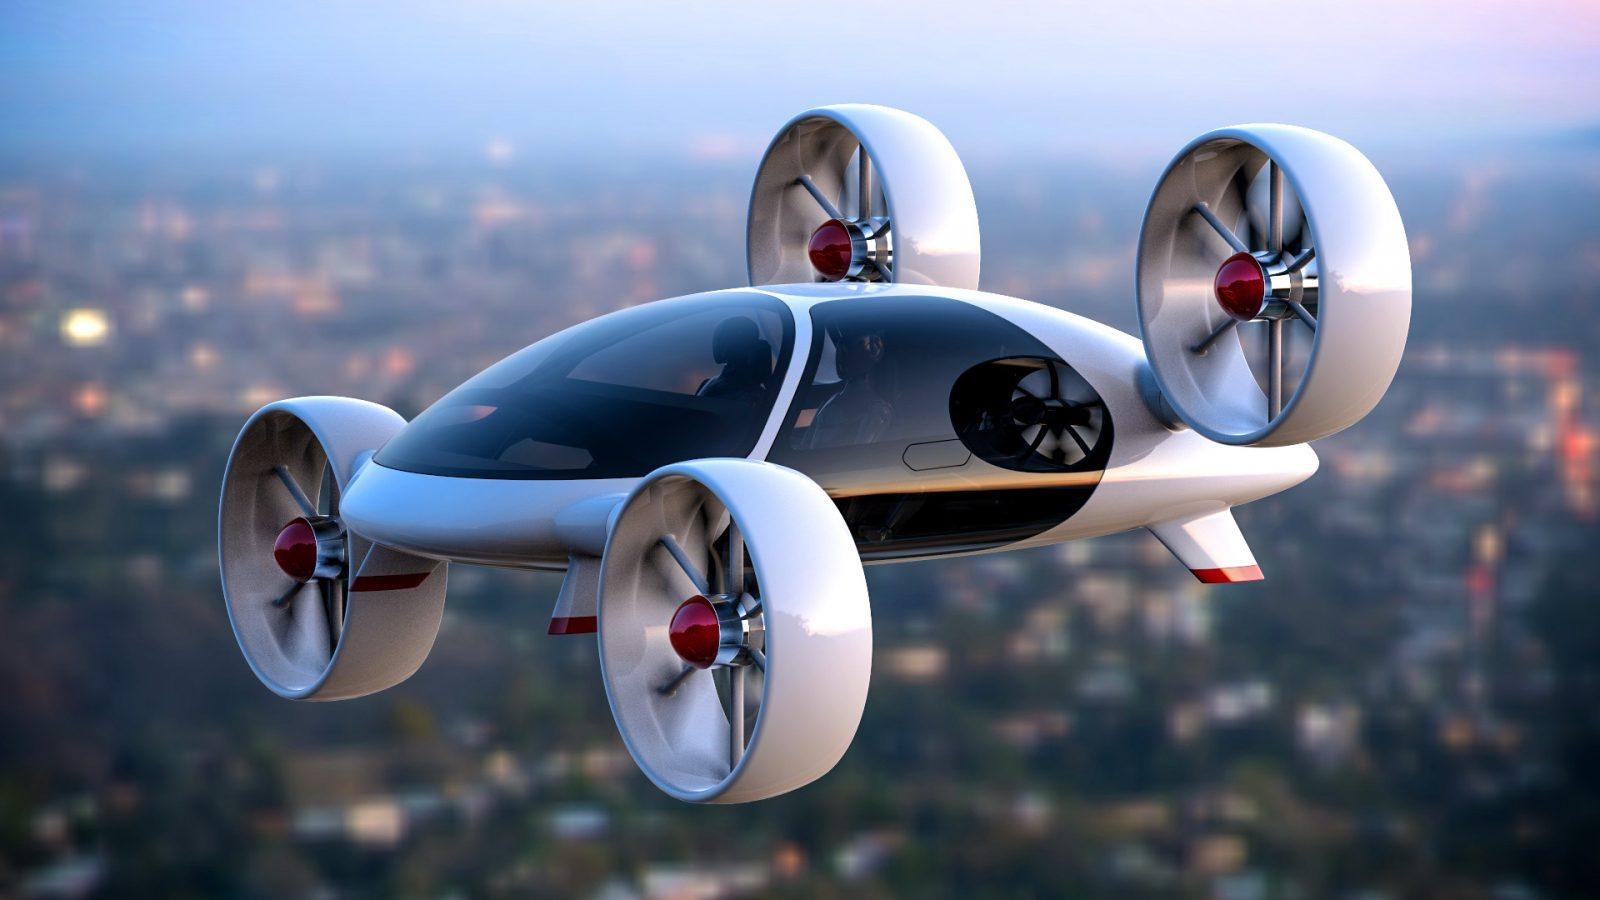 Why Don't We have Flying Cars? - CAR FROM JAPAN